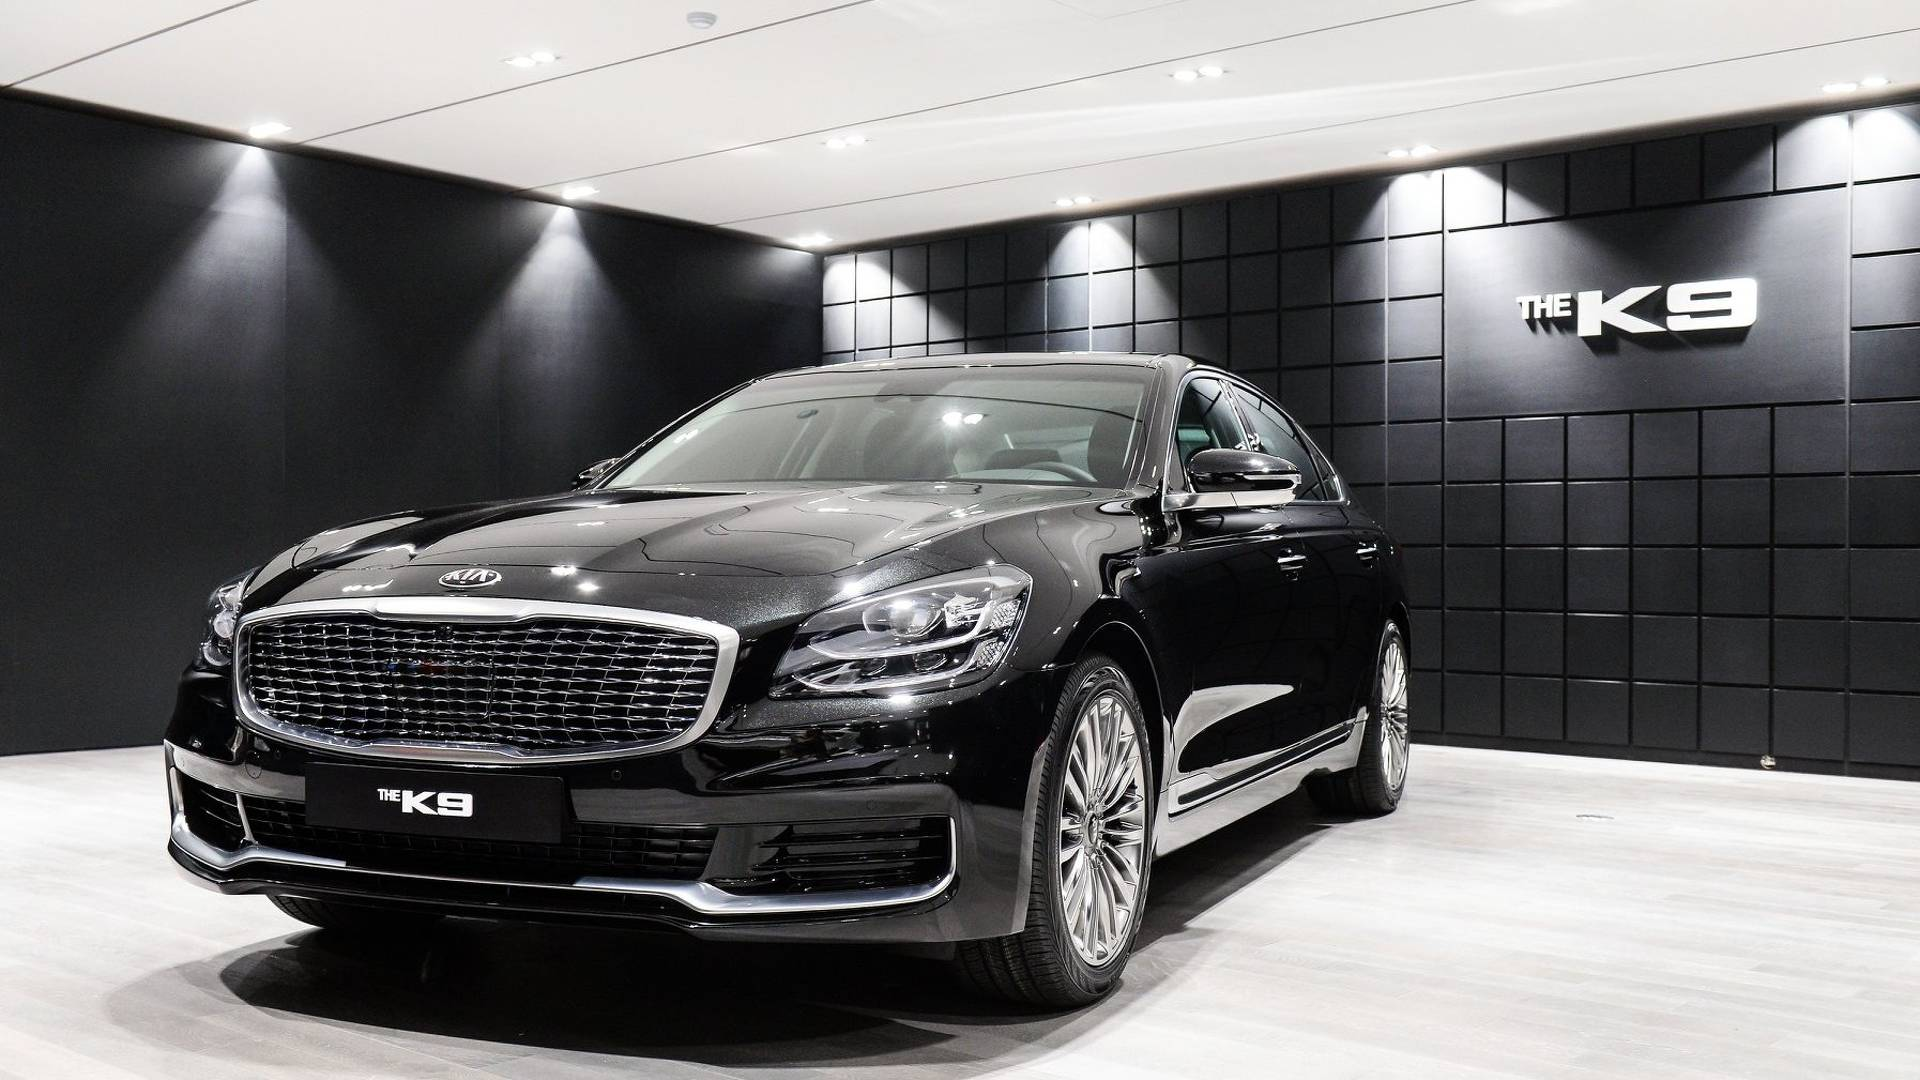 2018 Kia K900 Getting More Standard Kit Price Hike Of Up To 5 000